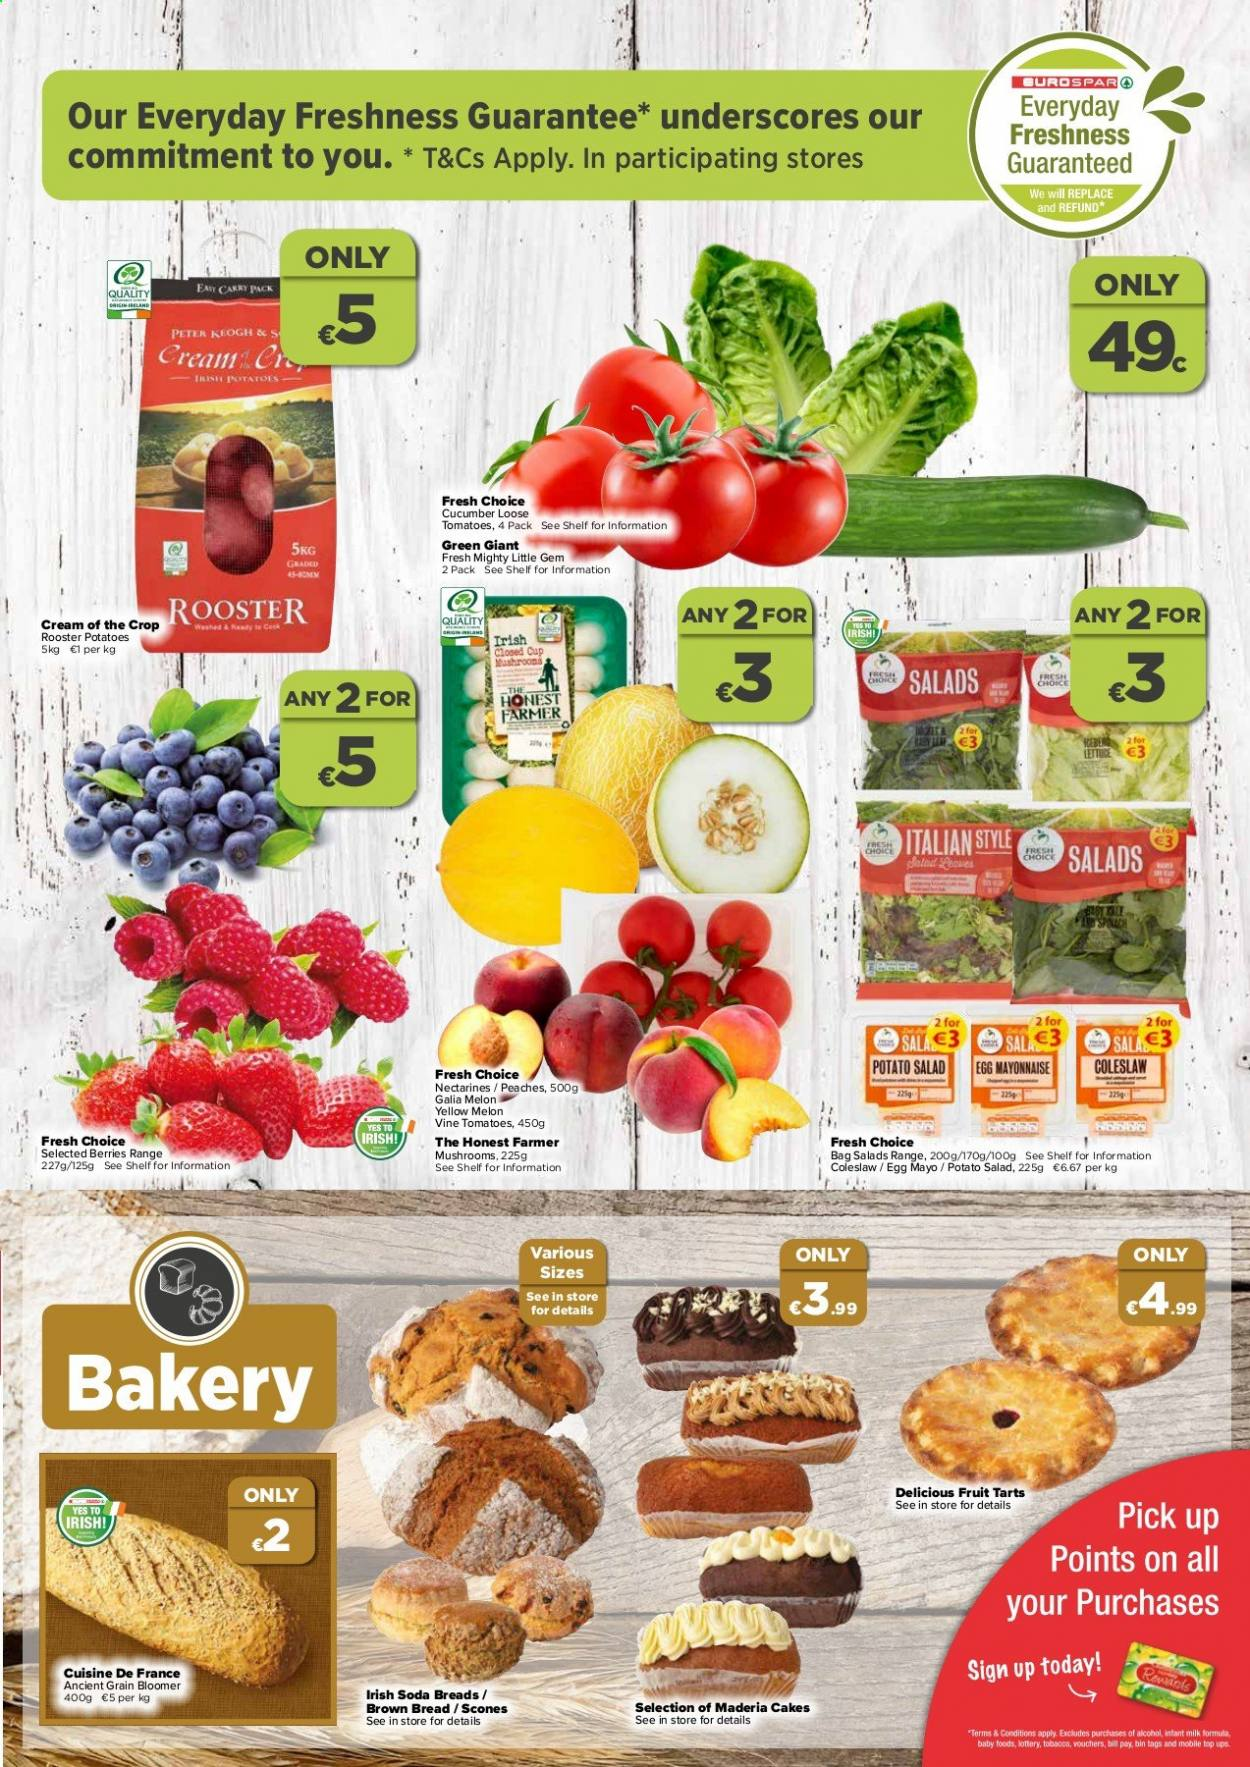 EUROSPAR offer  - 9.7.2020 - 29.7.2020 - Sales products - bag, bin, bread, cucumbers, cup, coleslaw, mayonnaise, milk, mushrooms, nectarines, shelf, tomatoes, potatoes, peaches, soda, melon, crop, salad. Page 3.